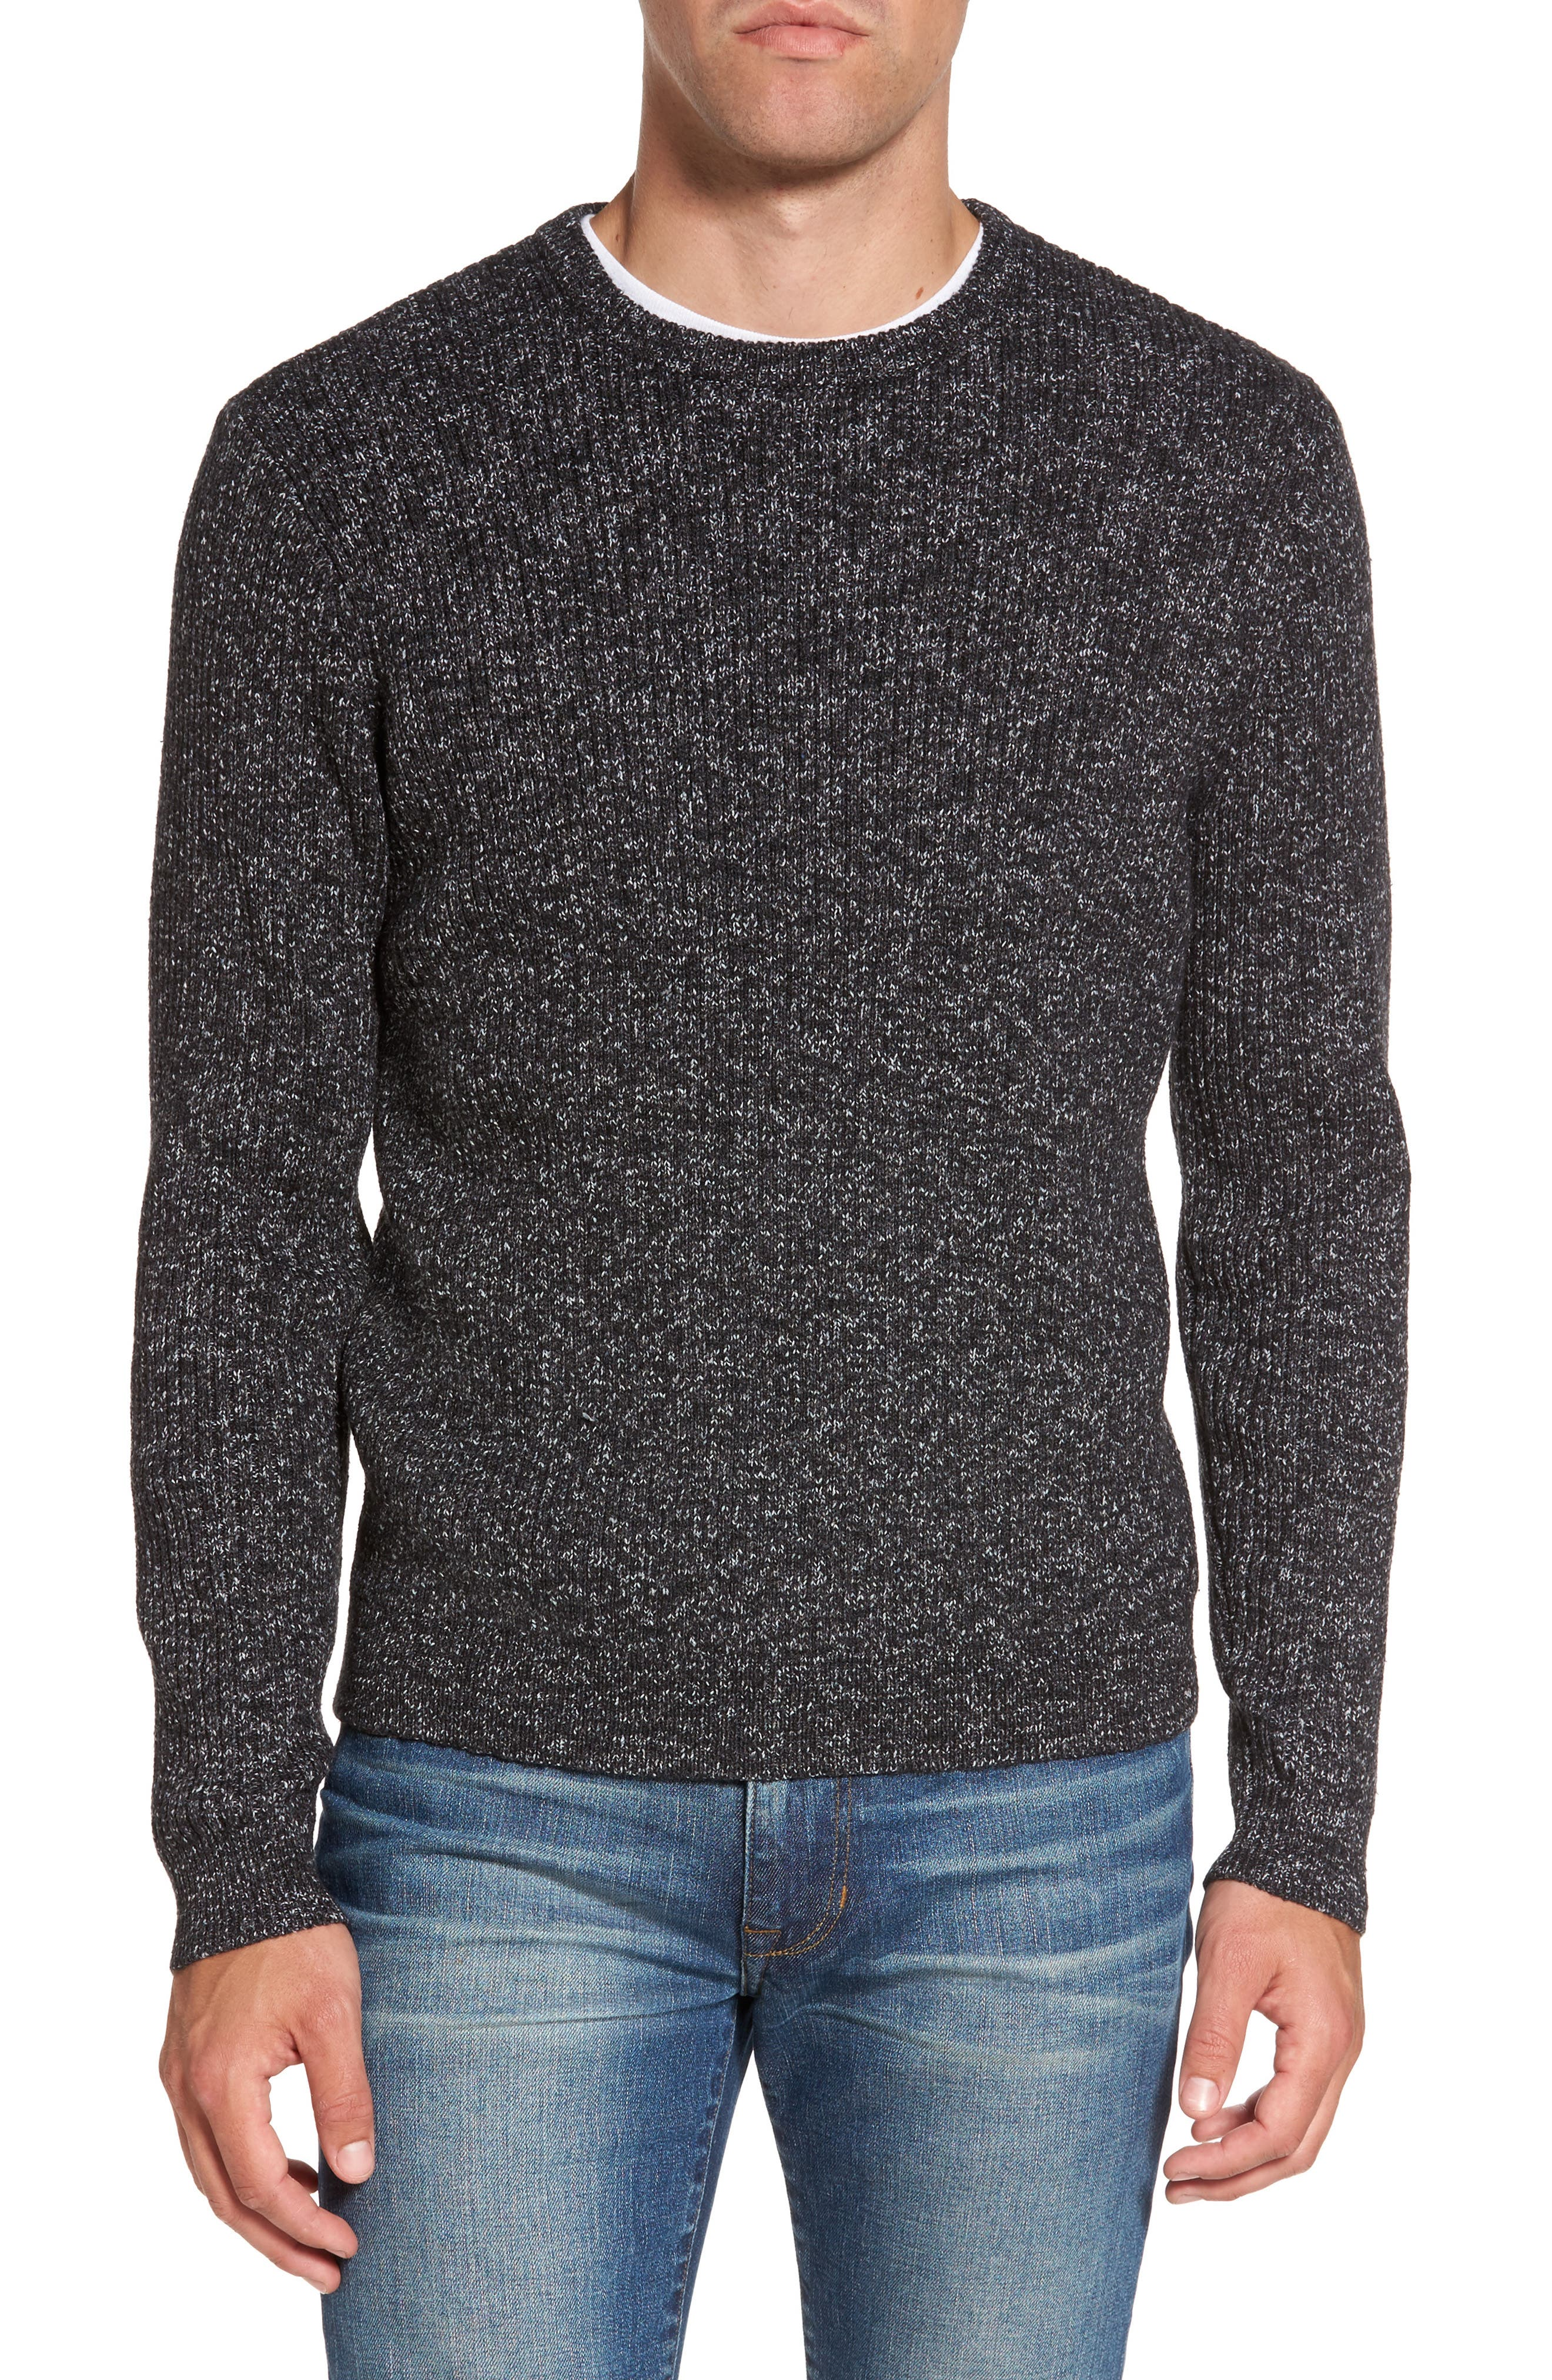 Main Image - Nordstrom Men's Shop Donegal Space Dye Nep Sweater